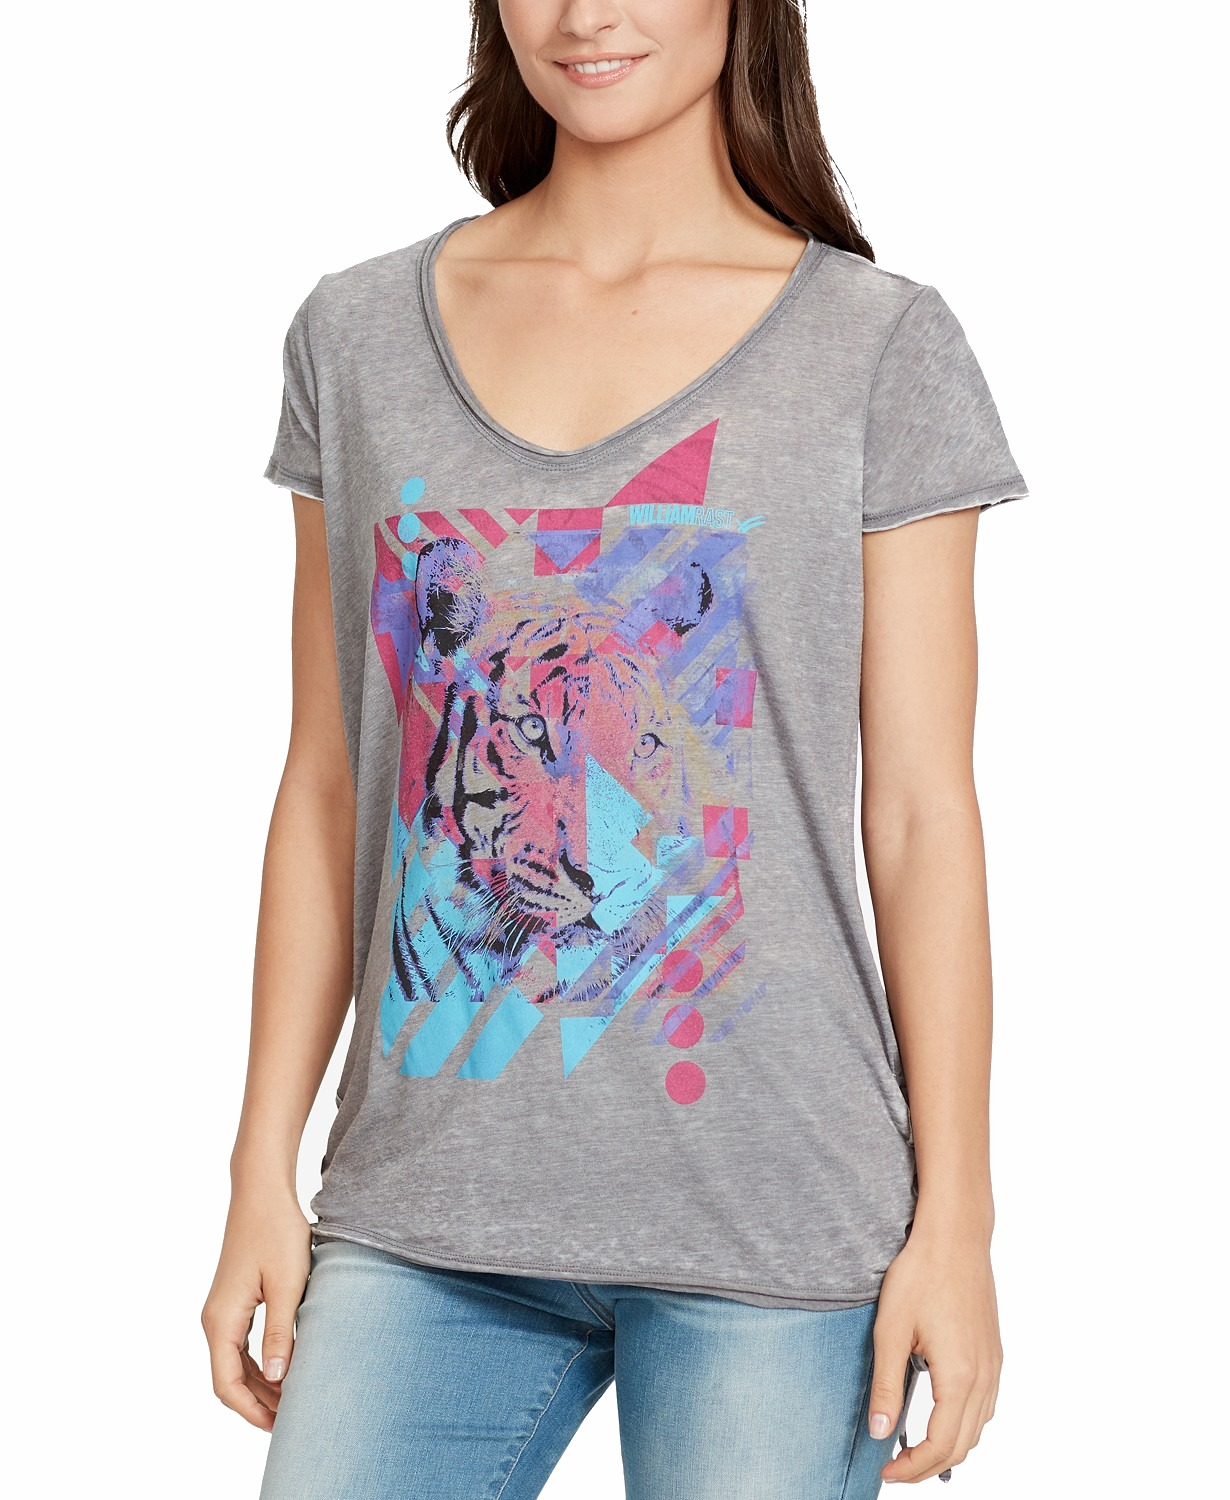 William-Rast-Women-039-s-Gray-Size-Medium-M-Tiger-Graphic-Print-Knit-Top